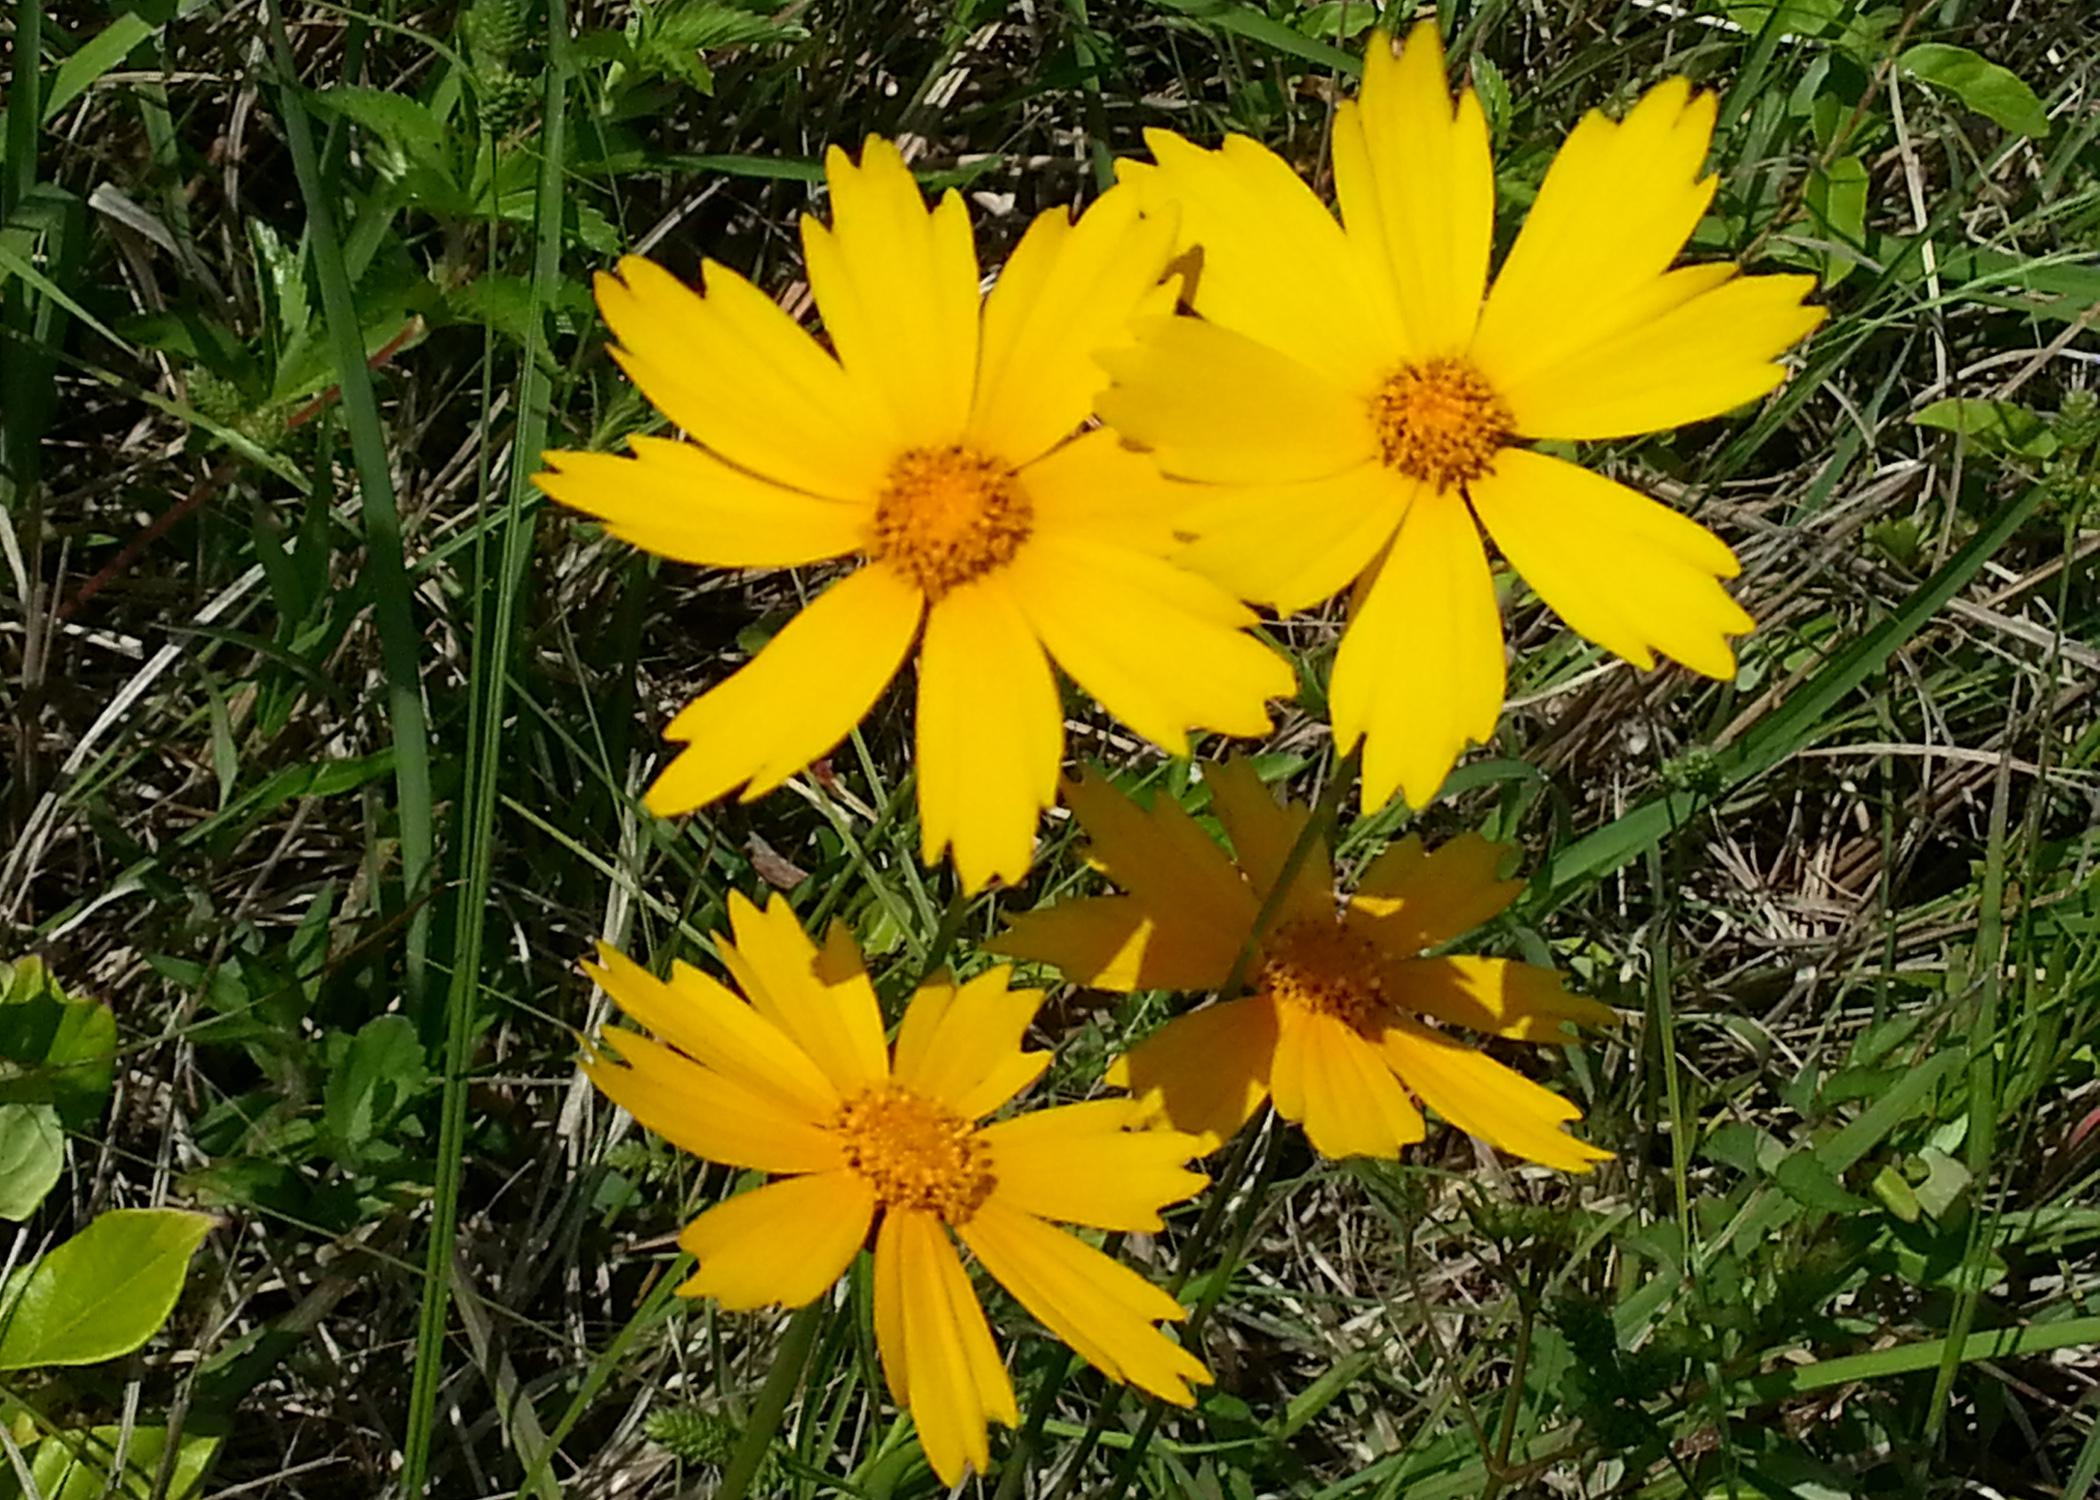 Coreopsis lanceolata is the state wildflower of Mississippi, and it grows frequently along the state's roadsides and in prairie areas. (Photo by MSU Extension Service/Gary Bachman)